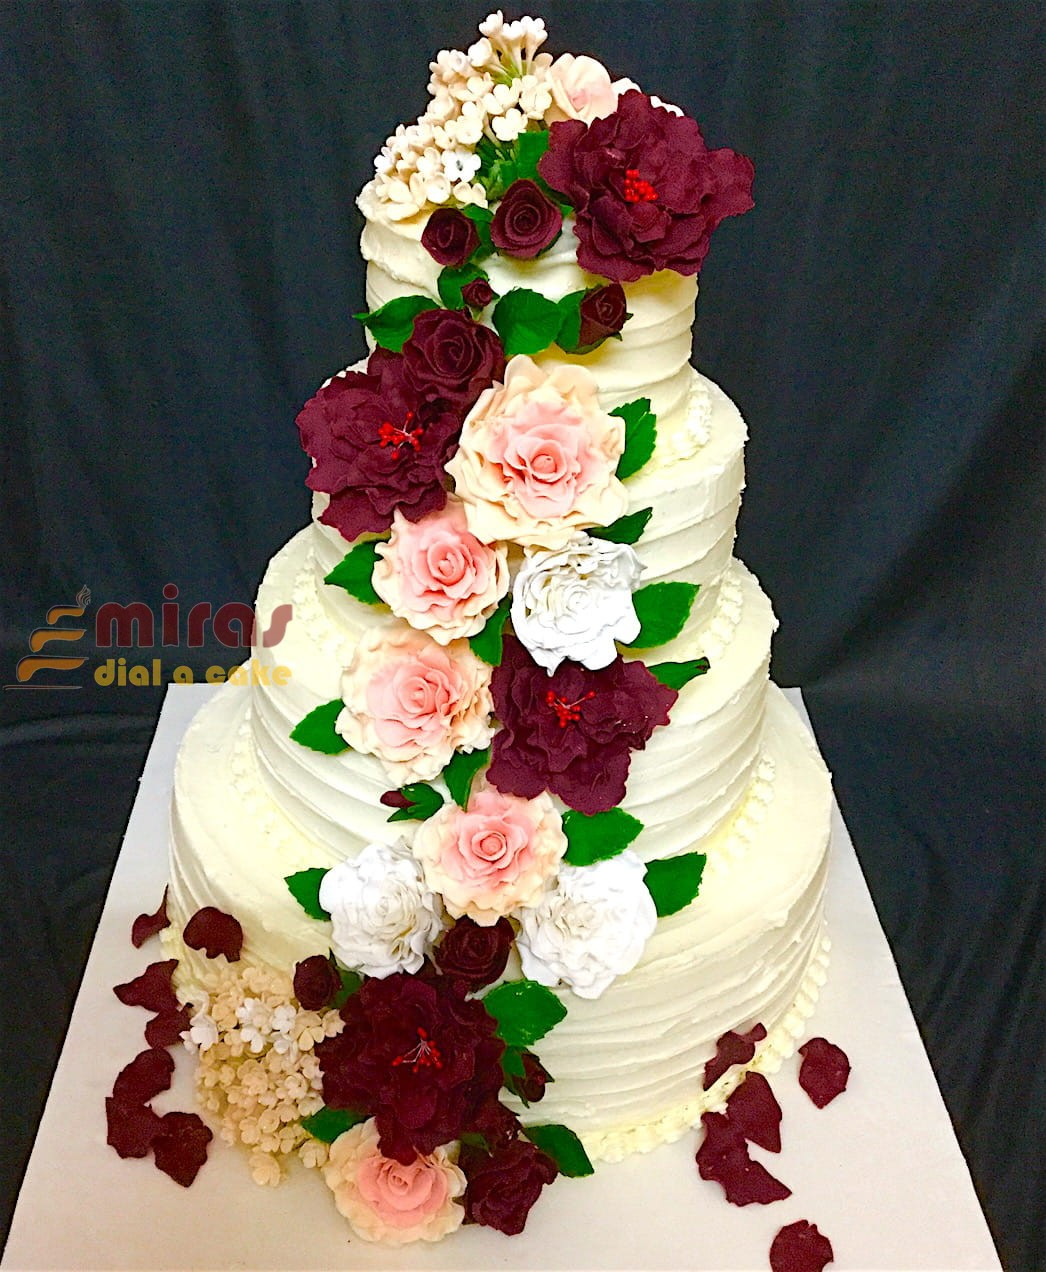 wedding cakes delivery in bangalore wedding cakes delivery in bangalore 5000 simple wedding 24169